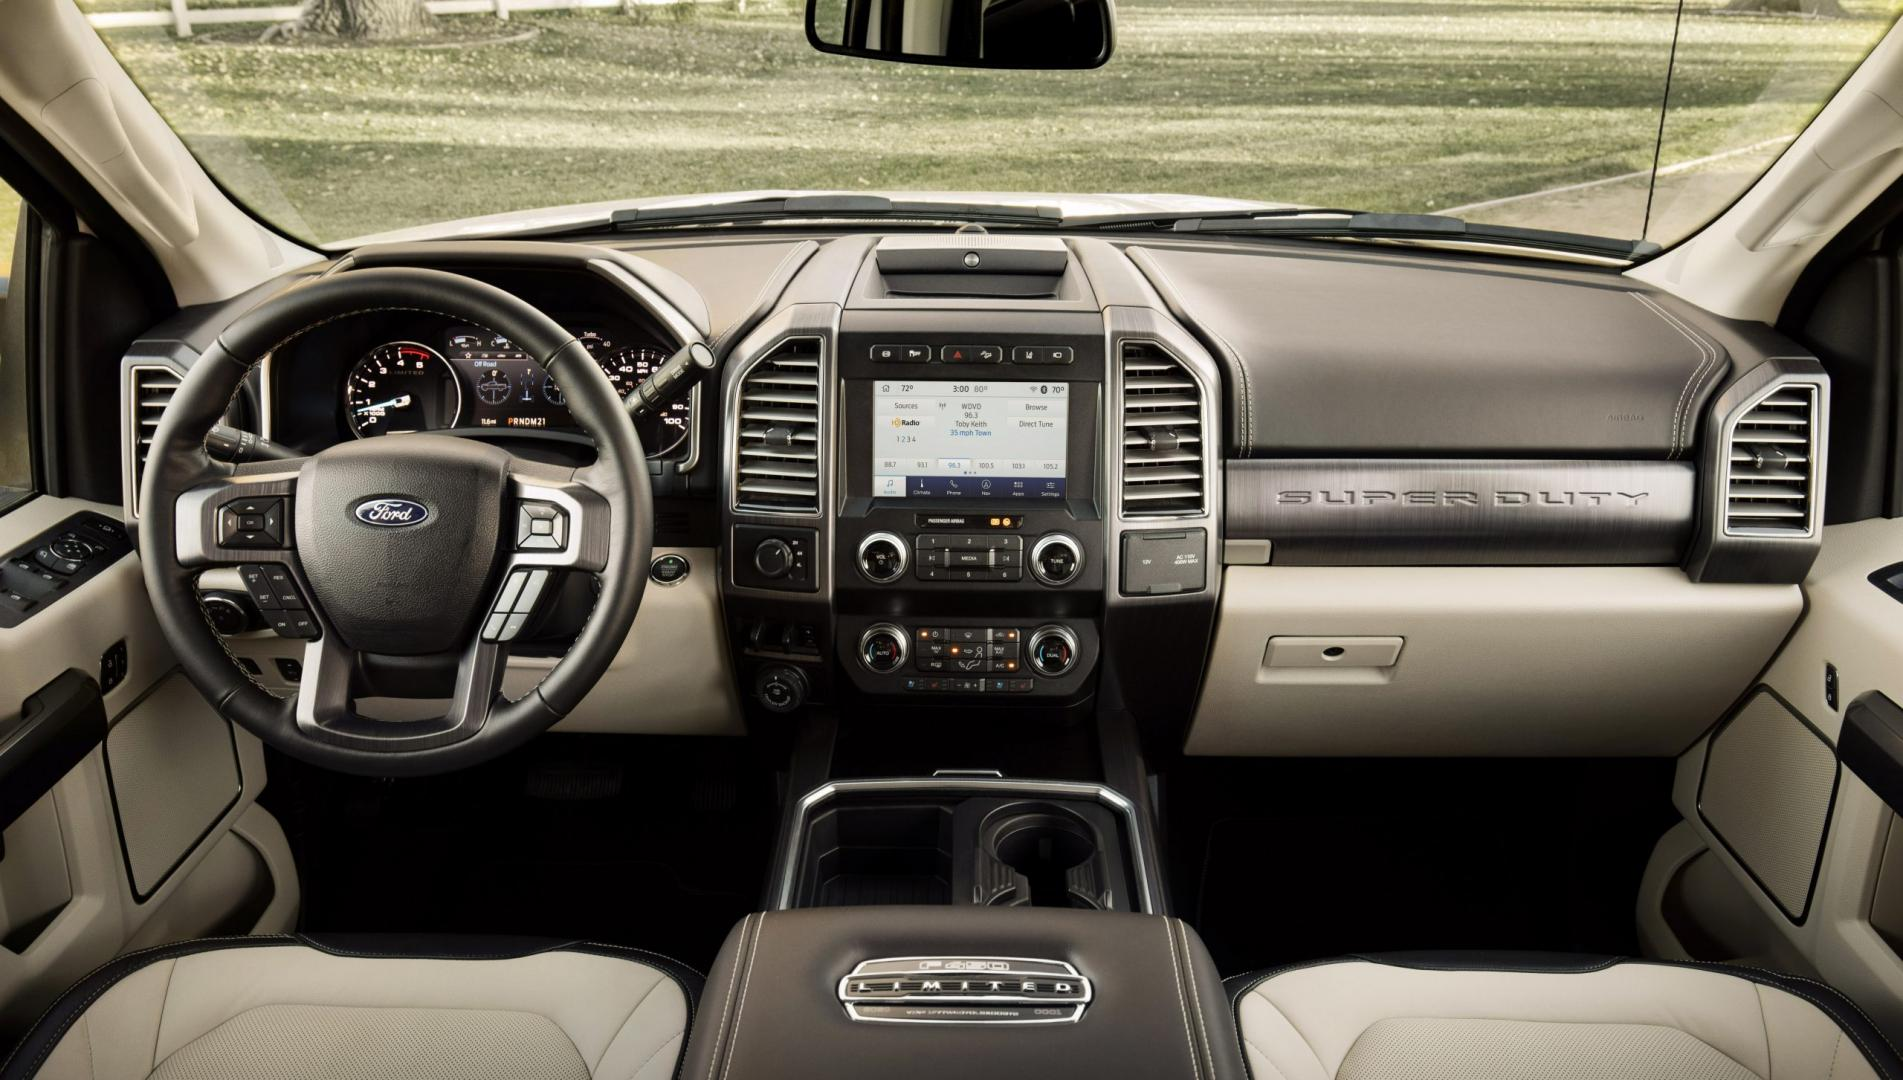 Ford F-series Super Duty interieur